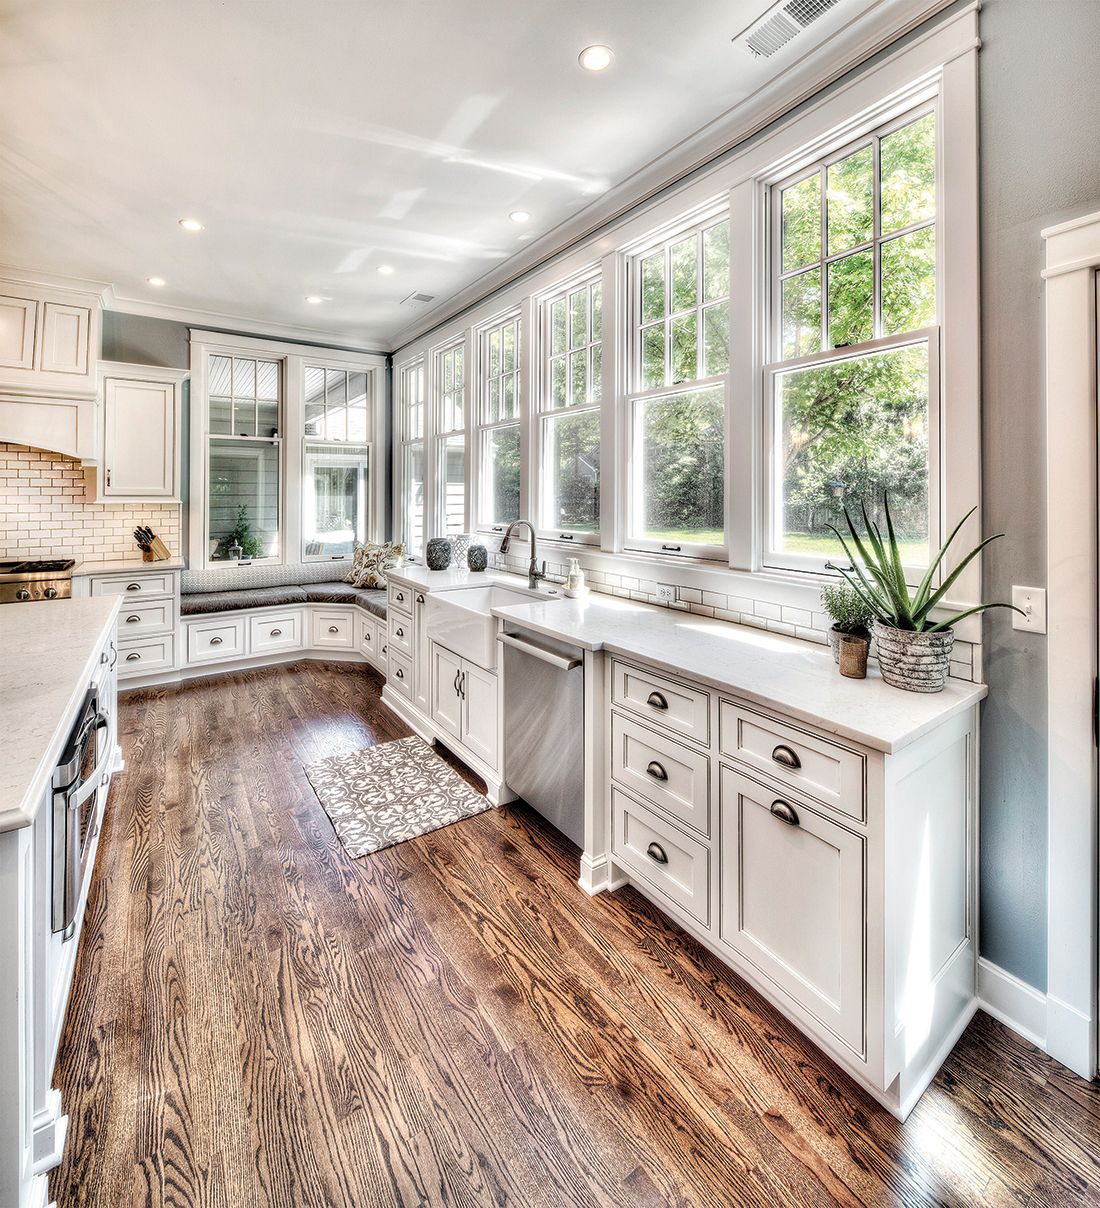 Kitchen Windows: A Substantial Kansas City Kitchen Remodel Subtly Shows Off